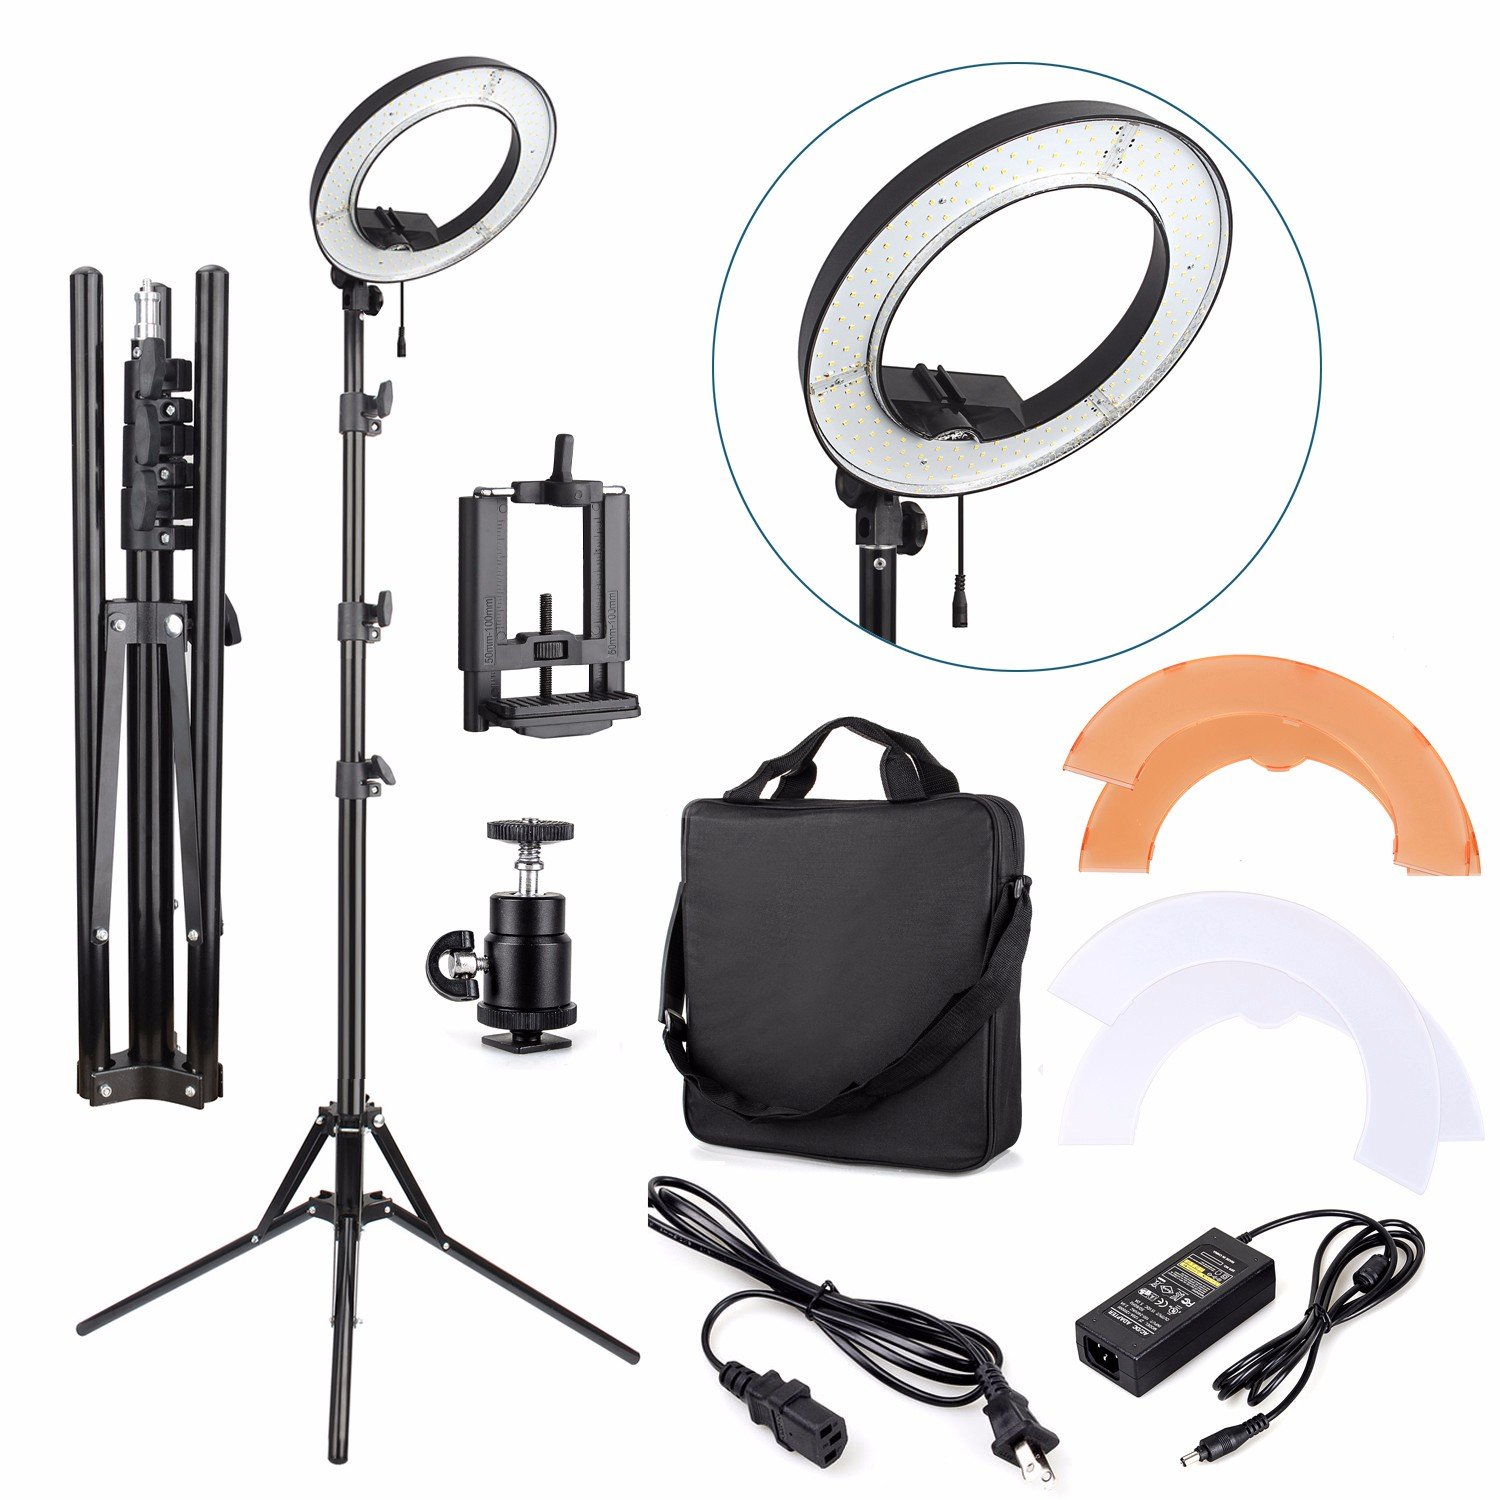 """EACHSHOT ES180 Kit, {Including Light, Stand, Phone Clamp, Tripod Head }180 LED 13"""" Stepless Adjustable Ring Light Camera Photo/Video Portrait photography 180pcs LED 5500K Dimmable"""